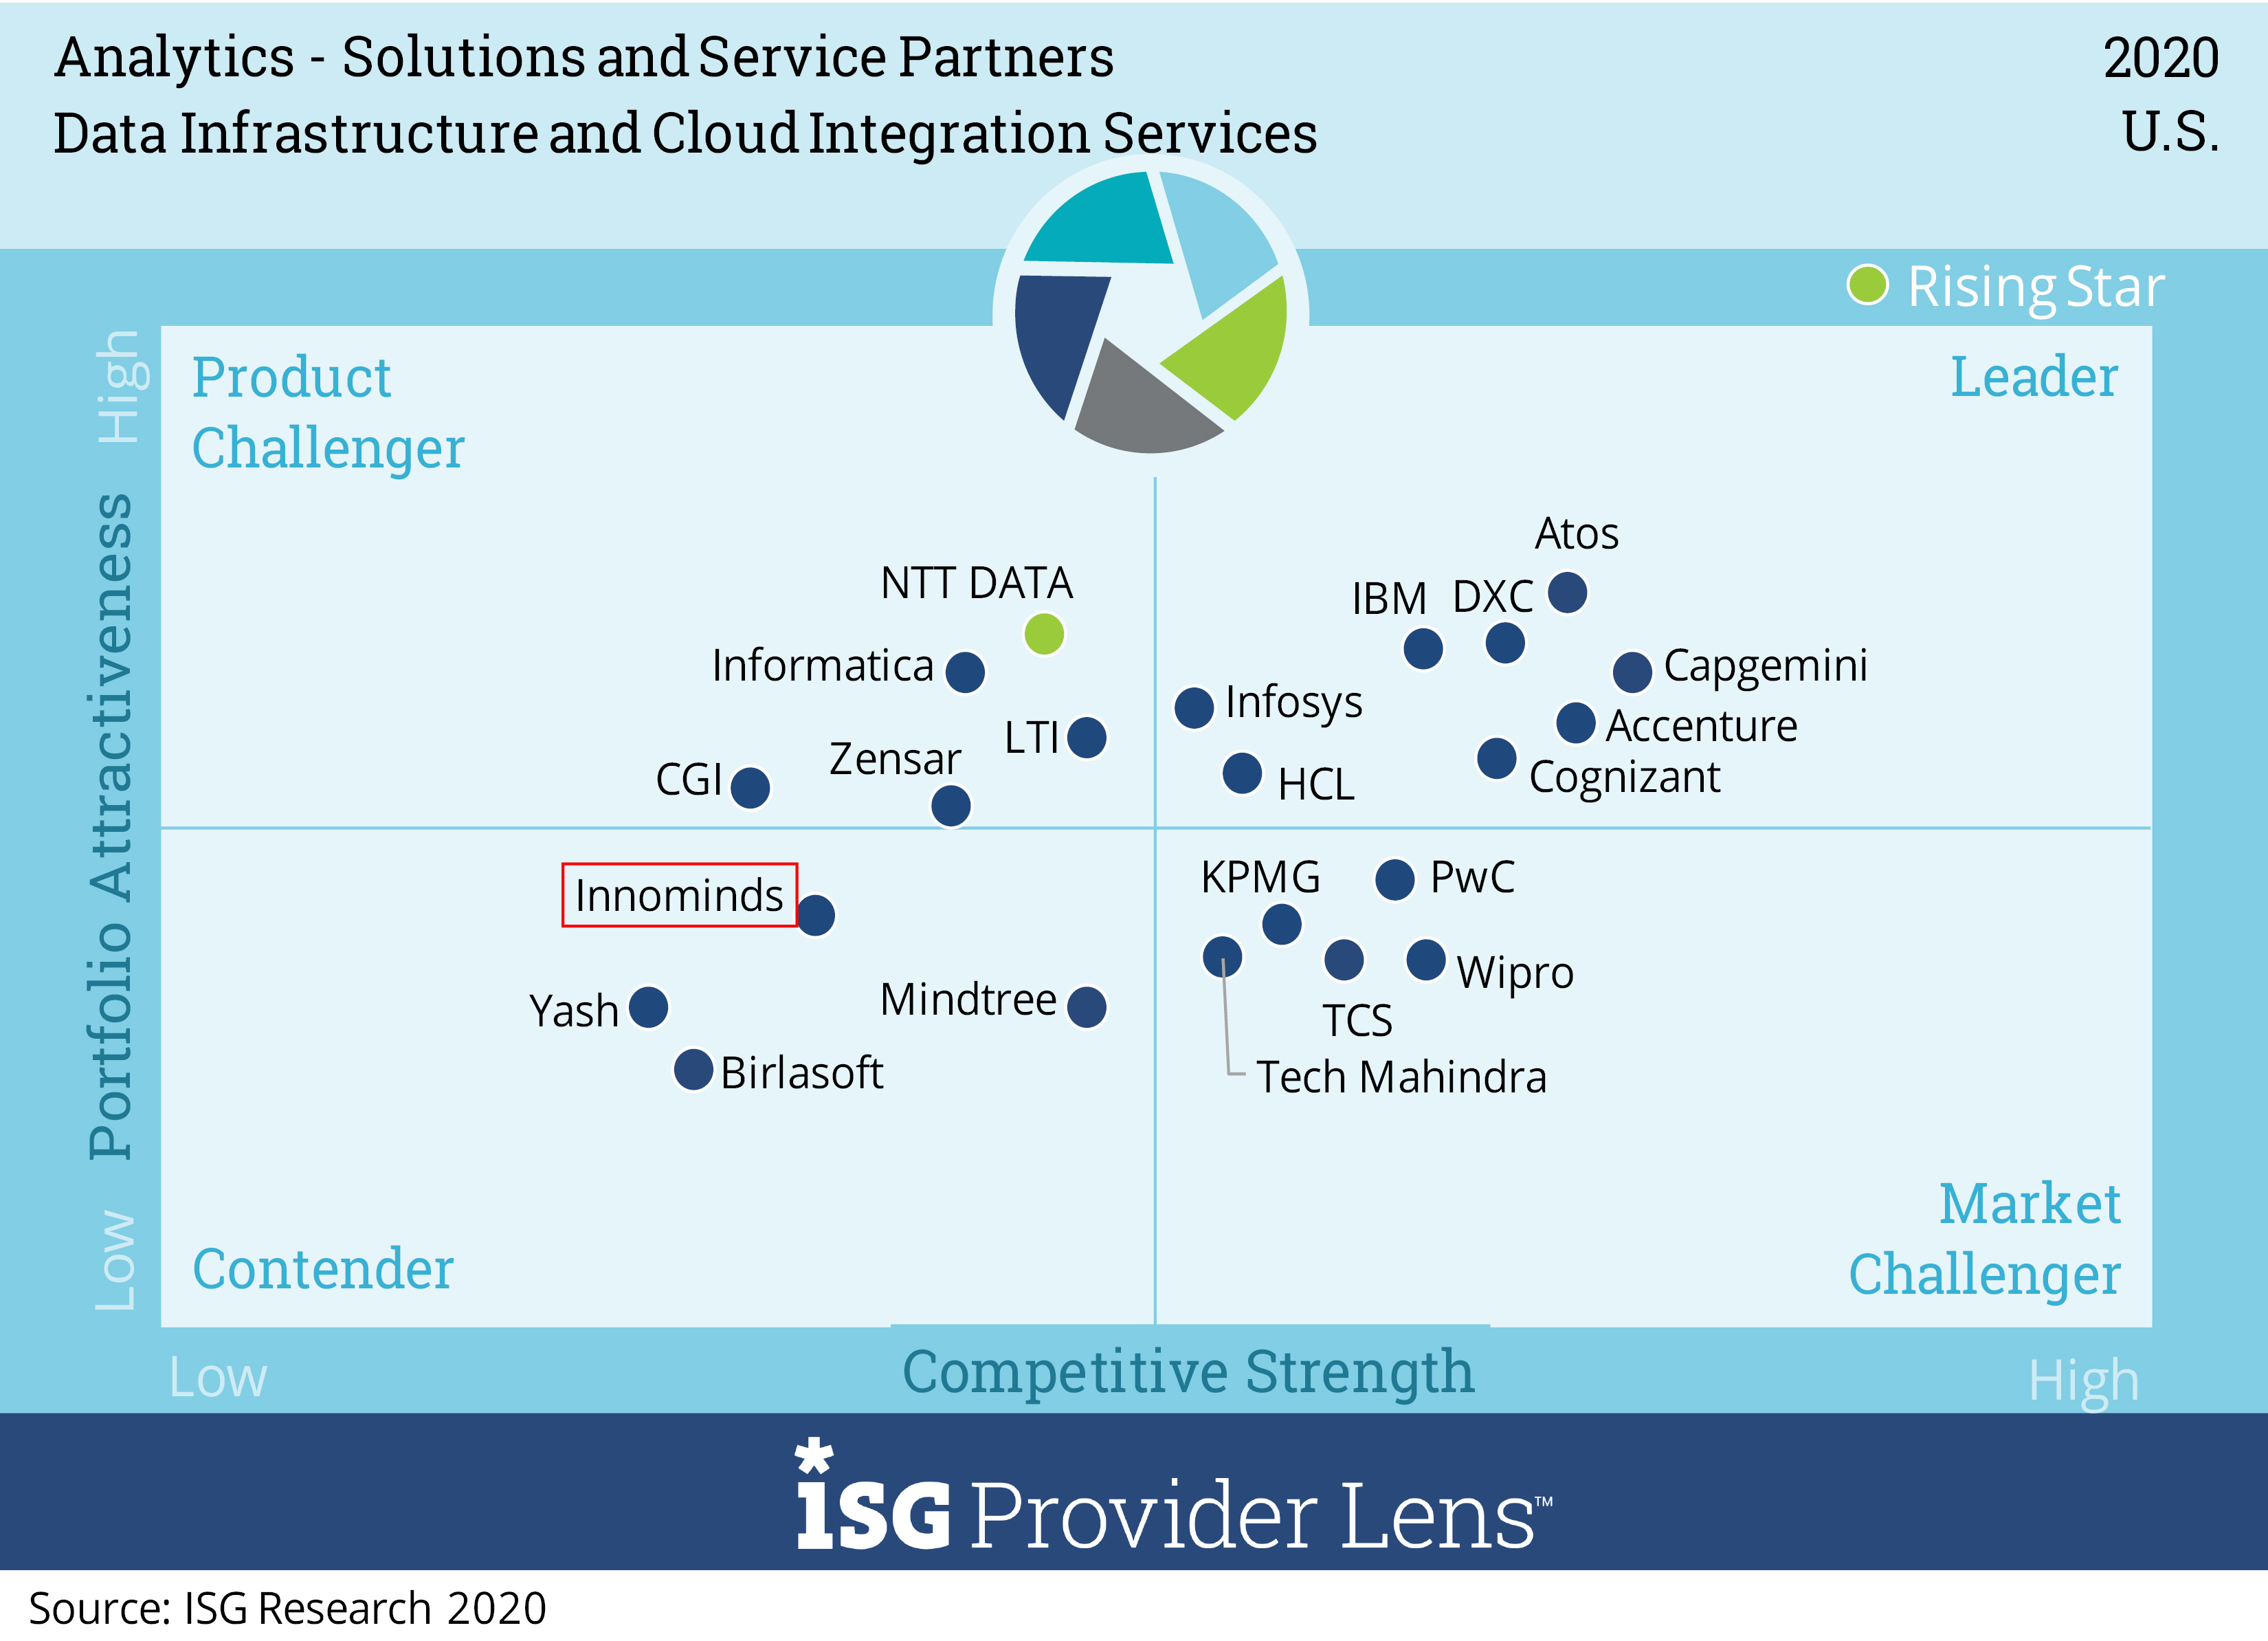 Data-Infrastructure-and-Cloud-Integration-Services